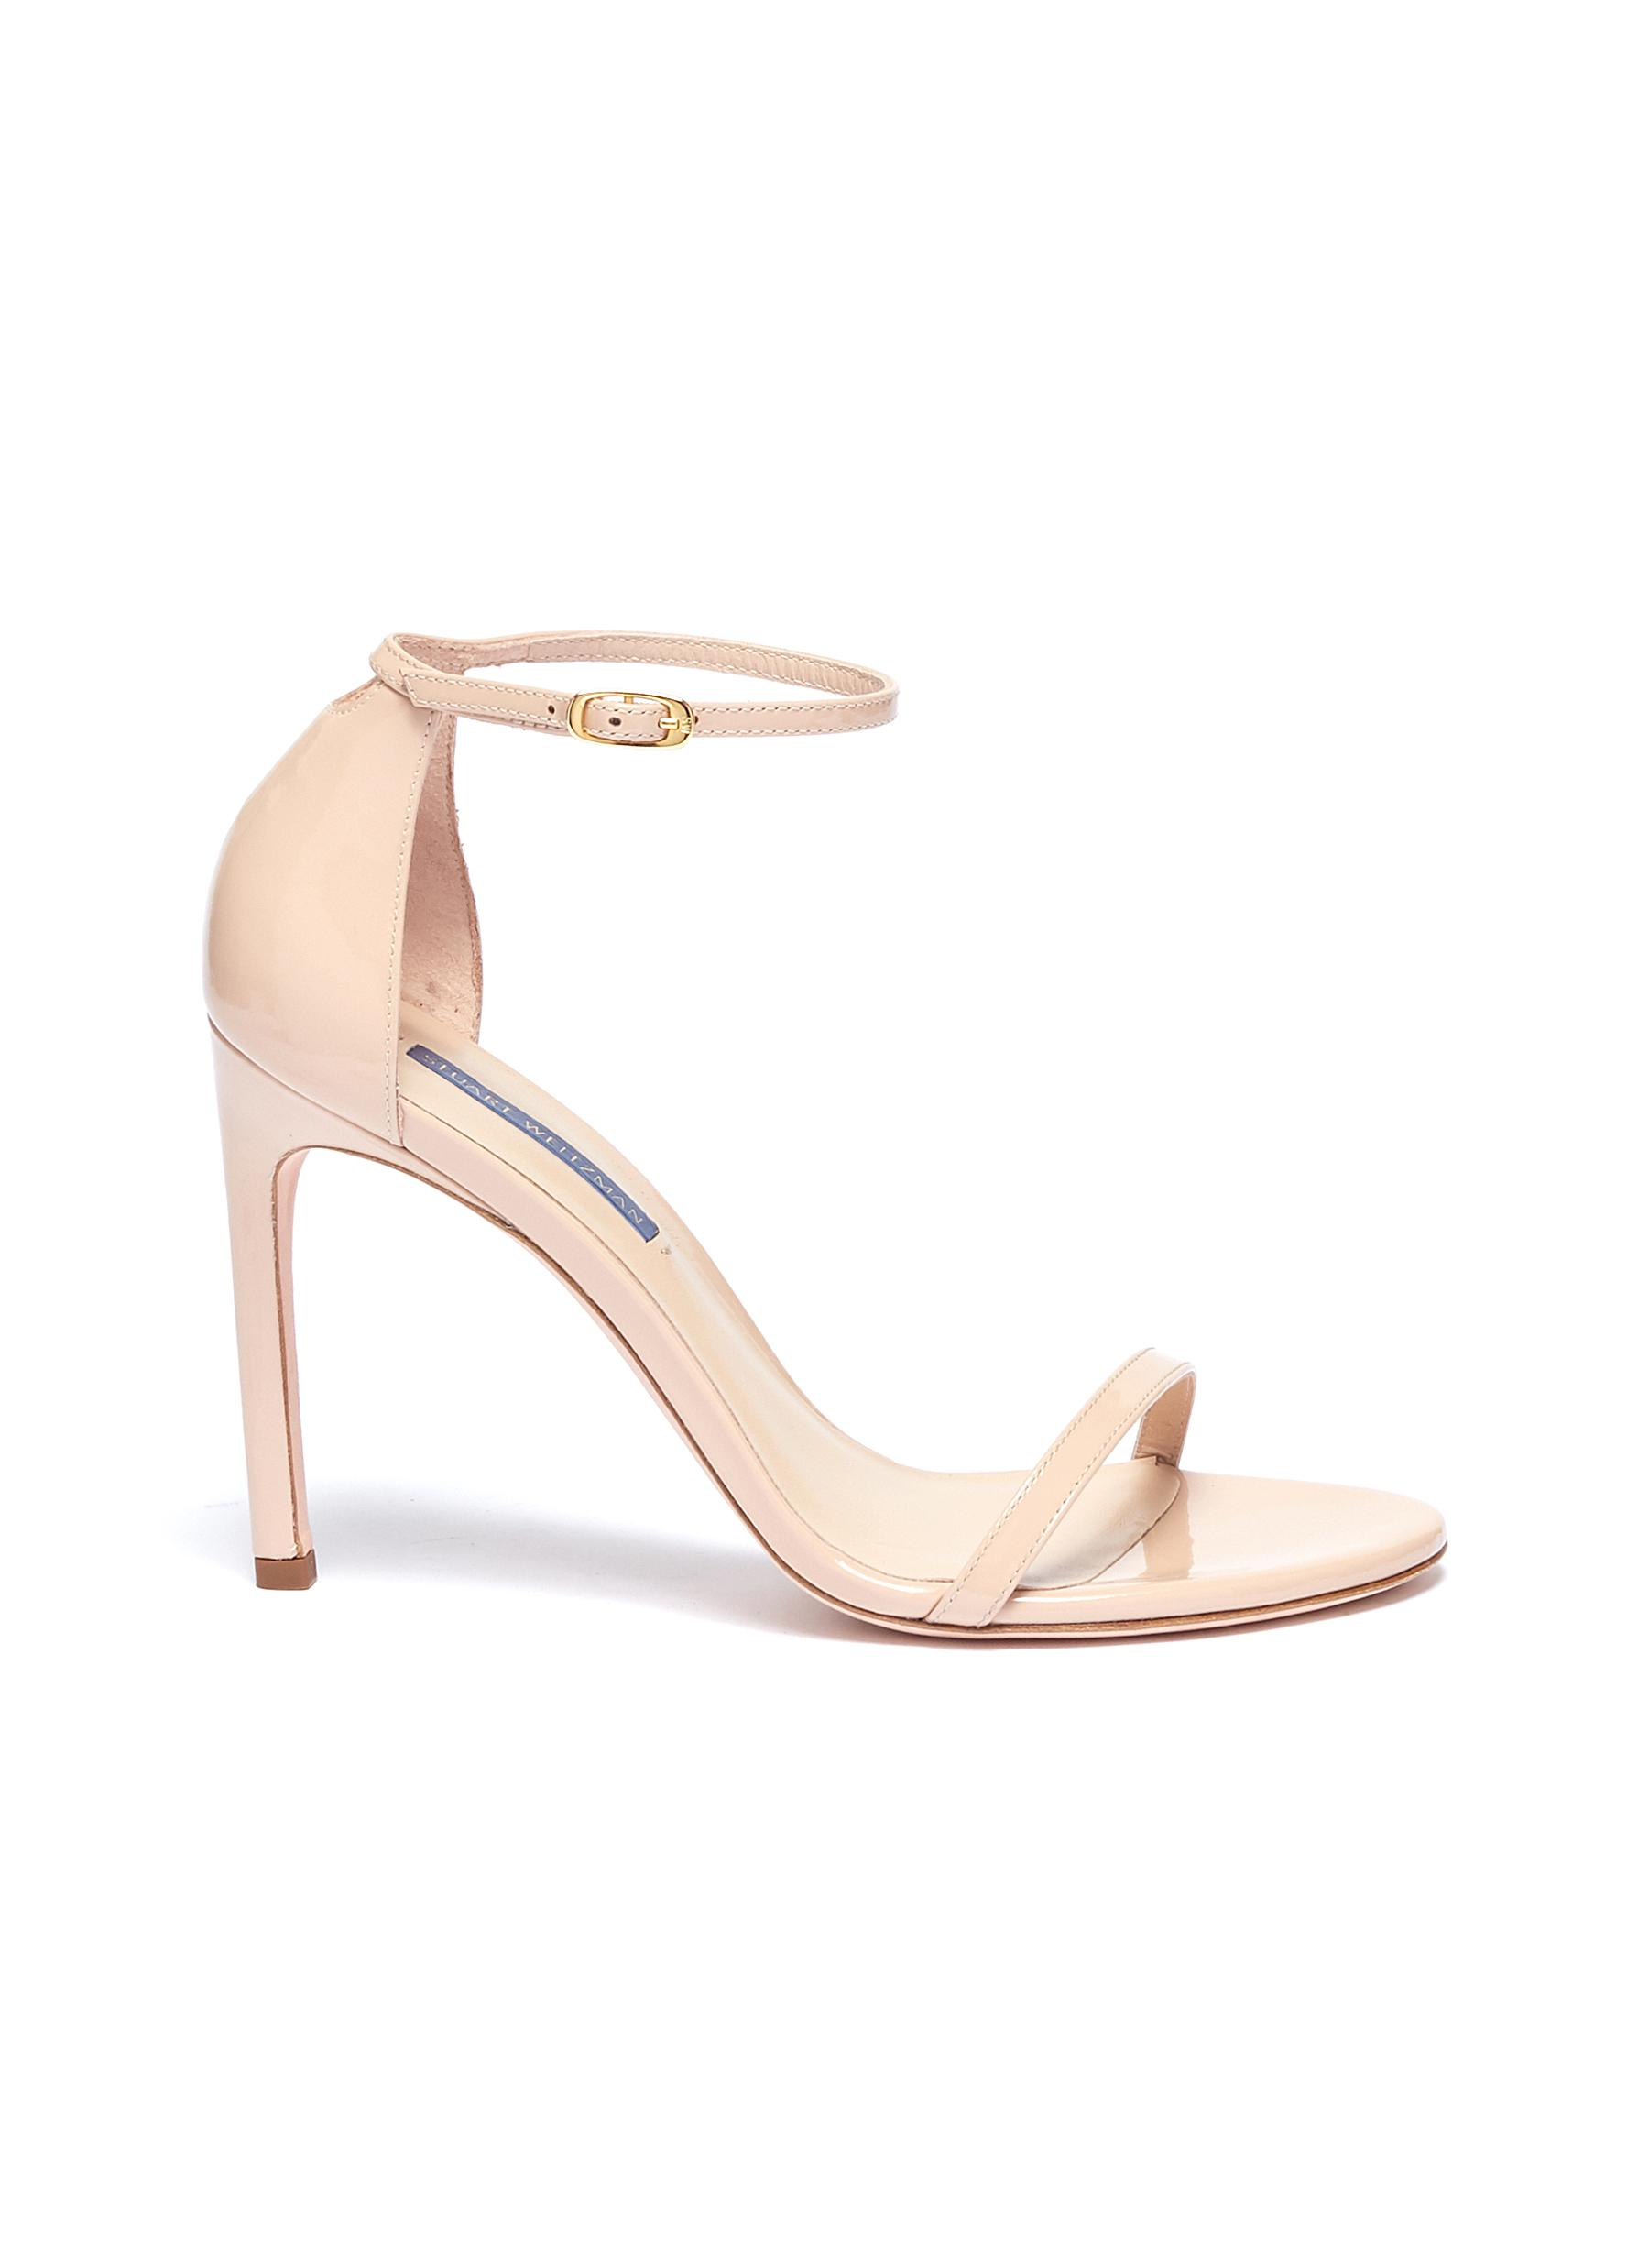 Nudistsong ankle strap patent leather ankle strap sandals by Stuart Weitzman